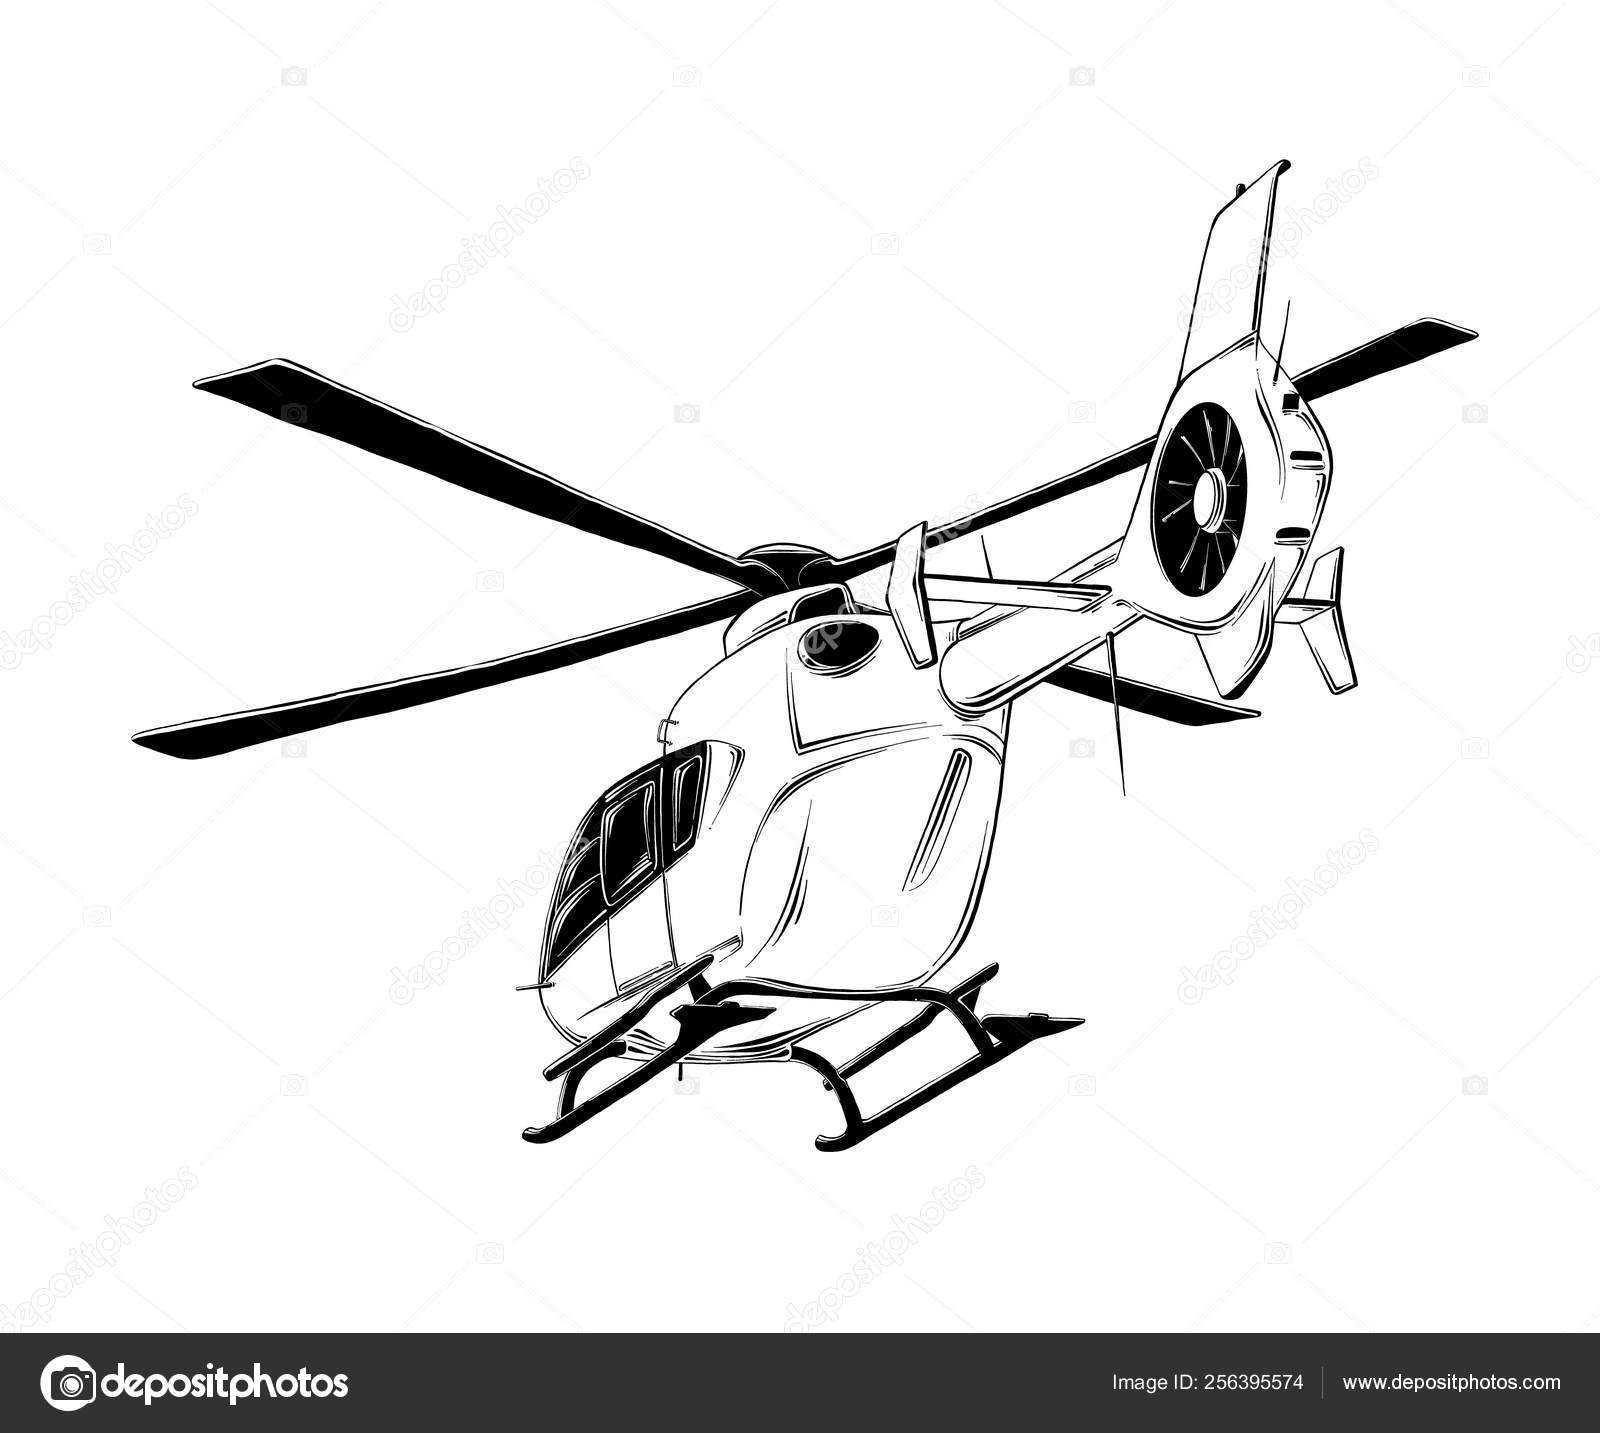 depositphotos stock illustration vector drawing of helicopter in